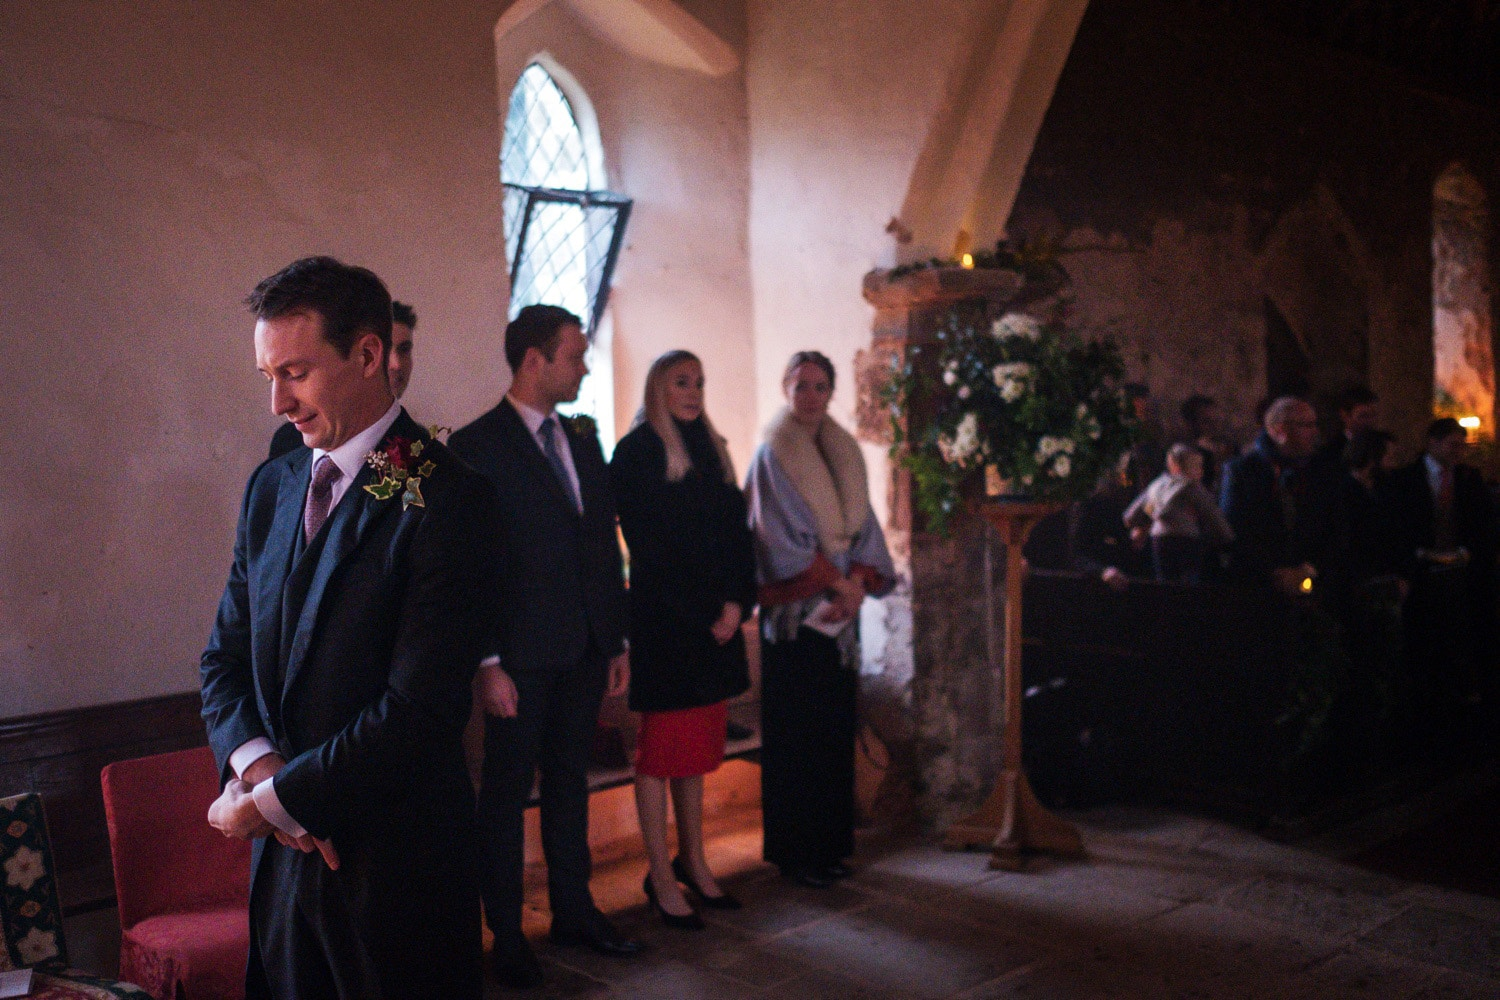 Groom waiting at alter, Monmouthshire